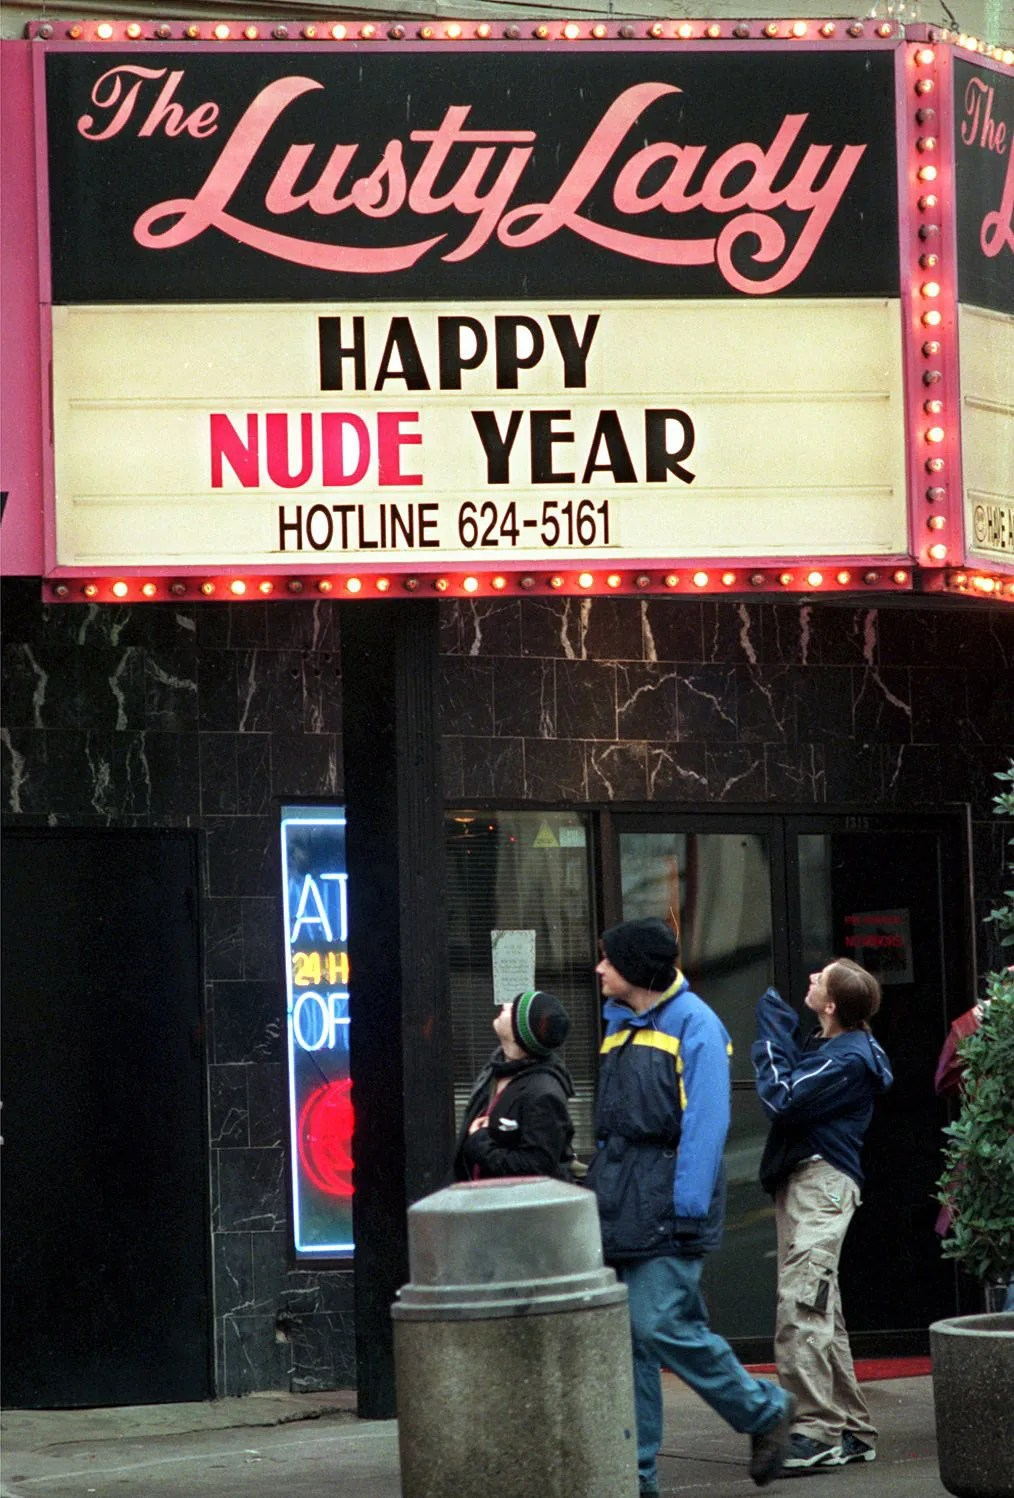 Old Lusty Lady strip club to get new look as boutique